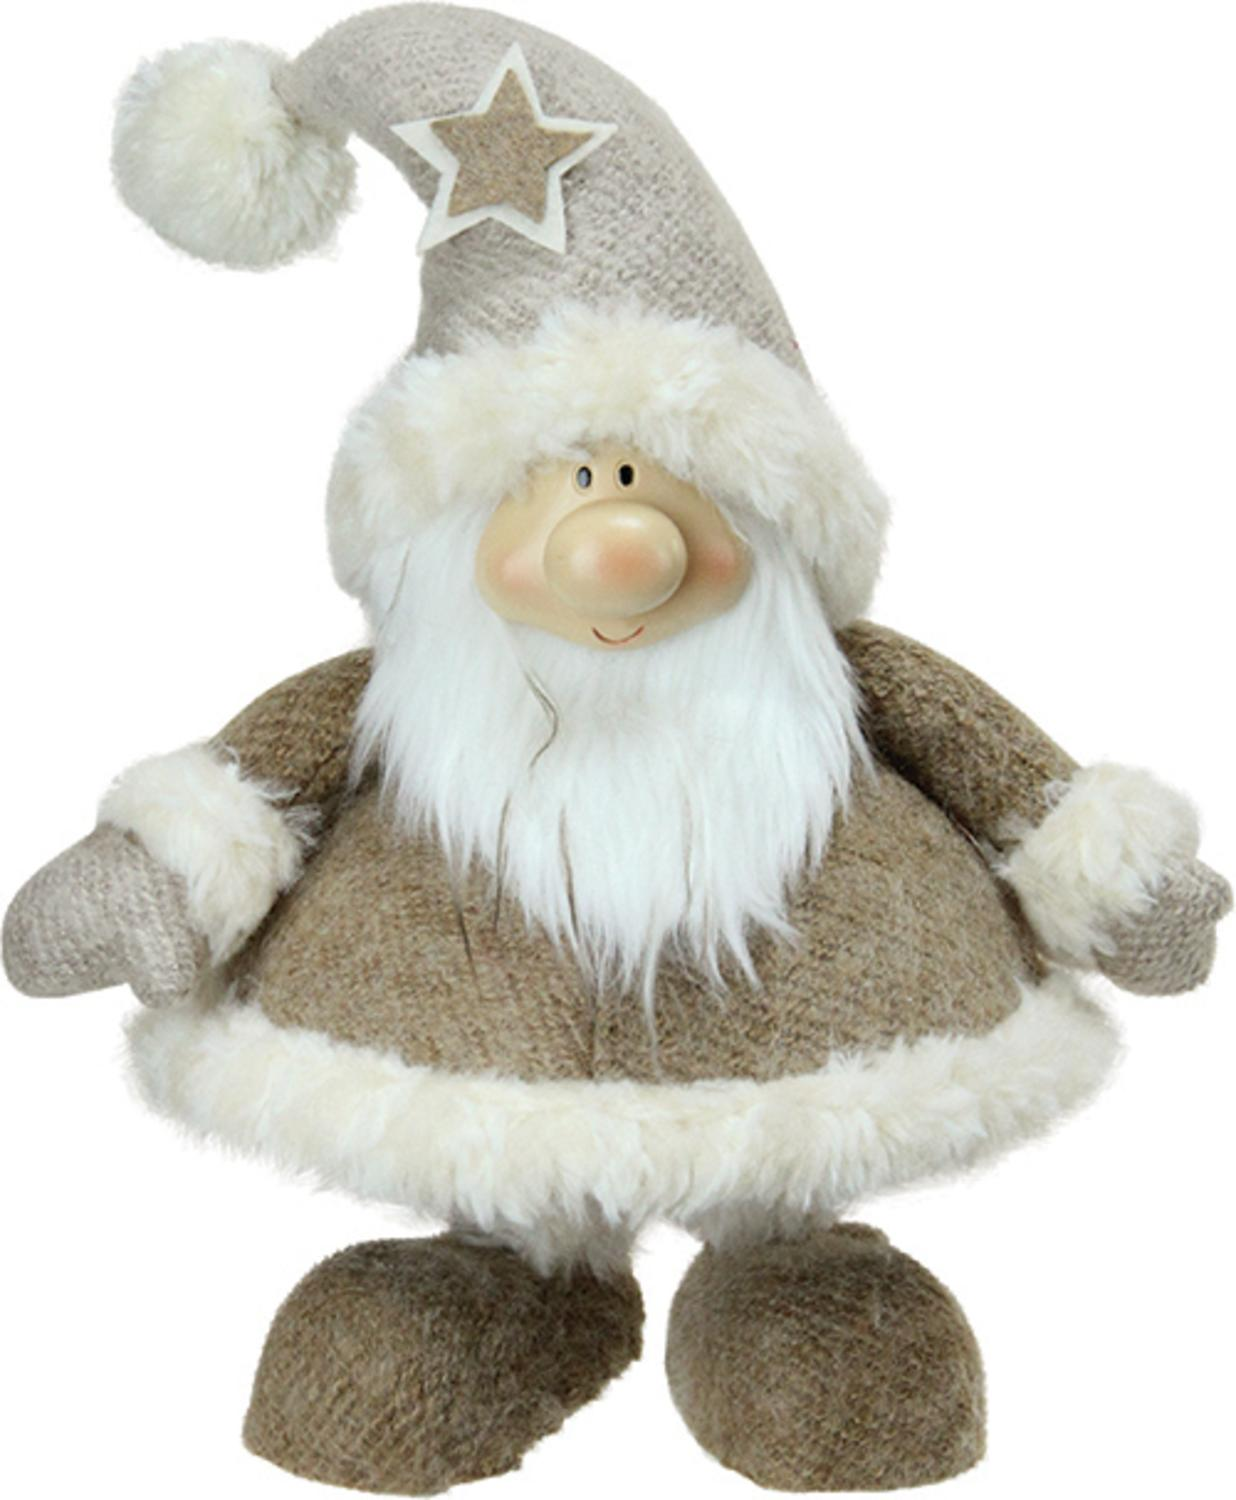 ''14.5'''' Plush and Portly Champagne Bobble ACTION Gnome Christmas Tabletop FIGURE''